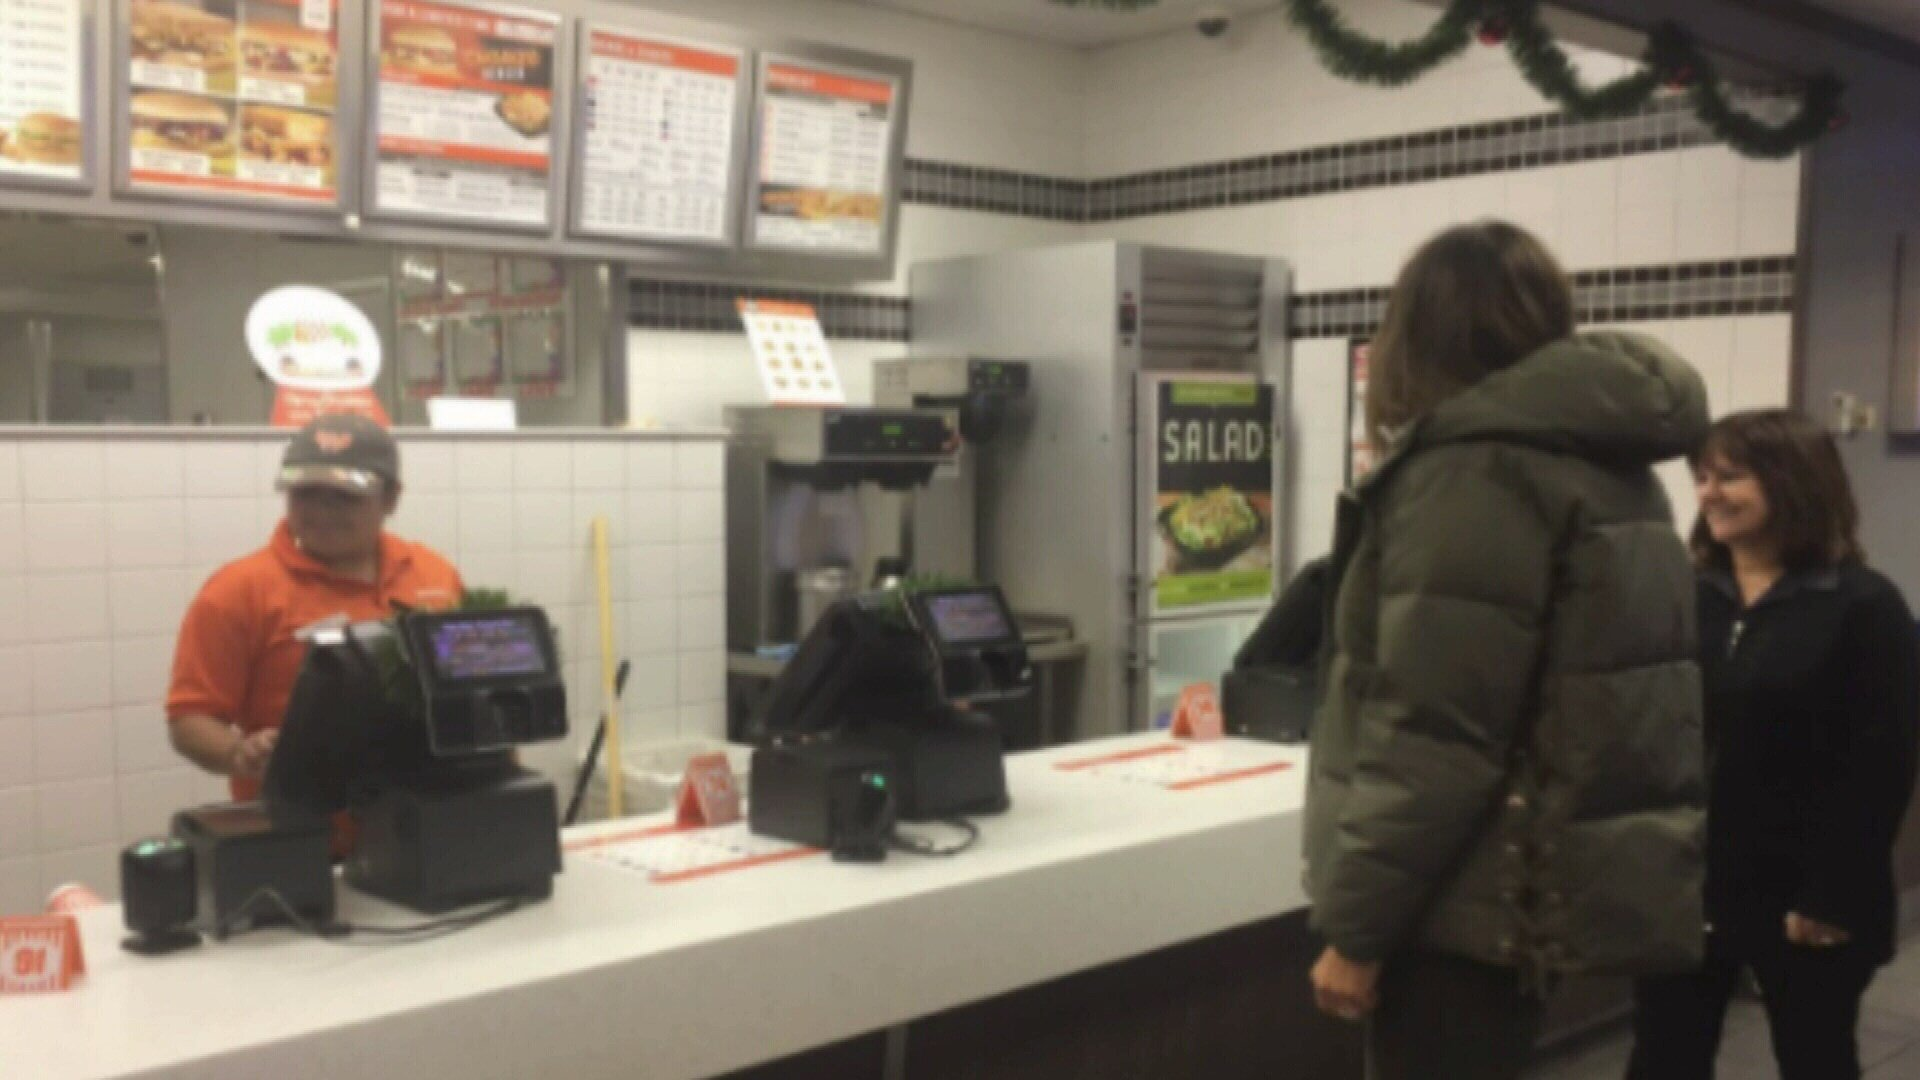 Employees at the Whataburger were shocked when motorcade stopped outside and the VIPs walked into their restaurant.